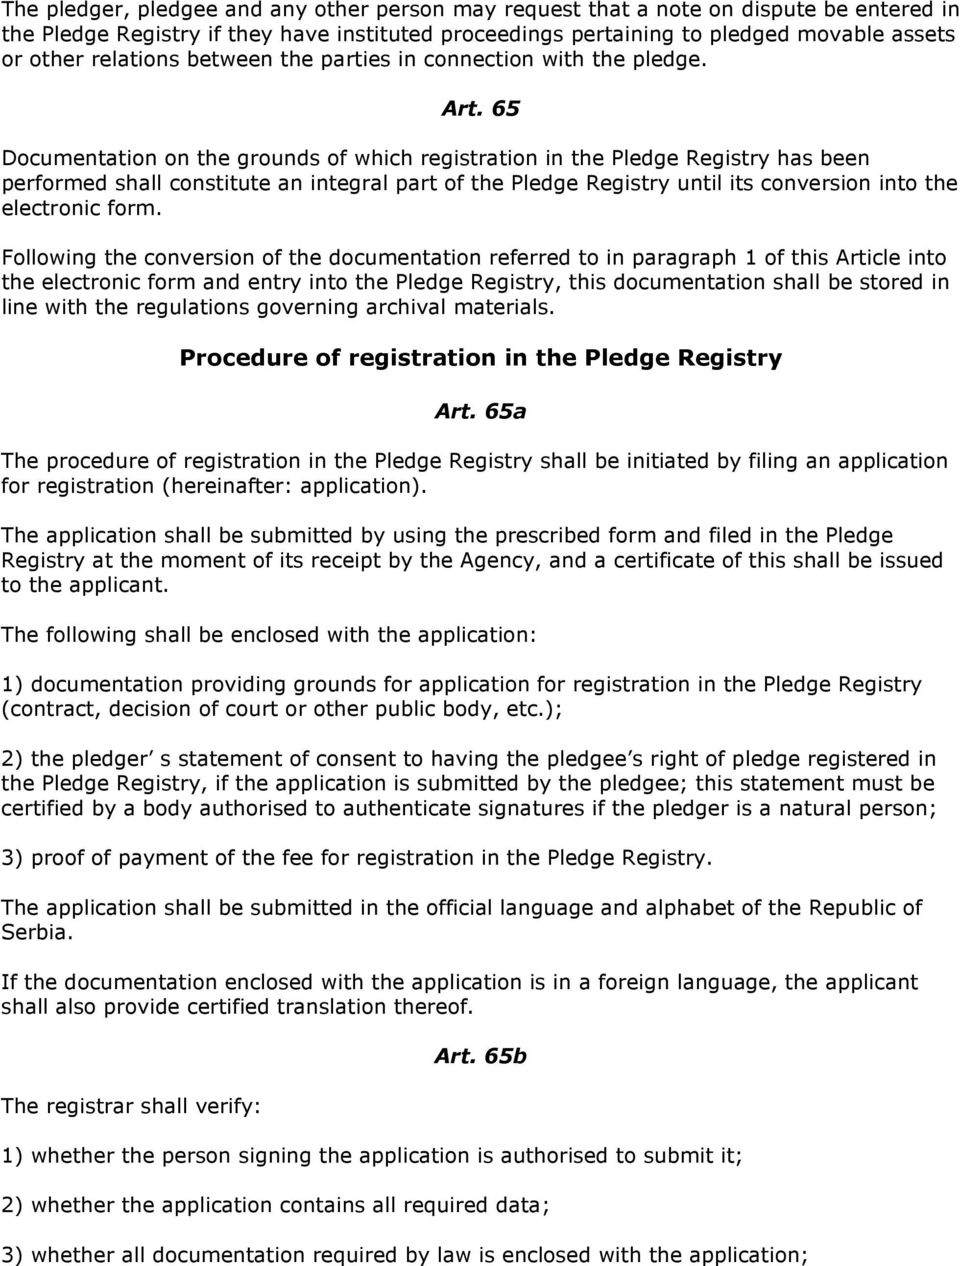 65 Documentation on the grounds of which registration in the Pledge Registry has been performed shall constitute an integral part of the Pledge Registry until its conversion into the electronic form.